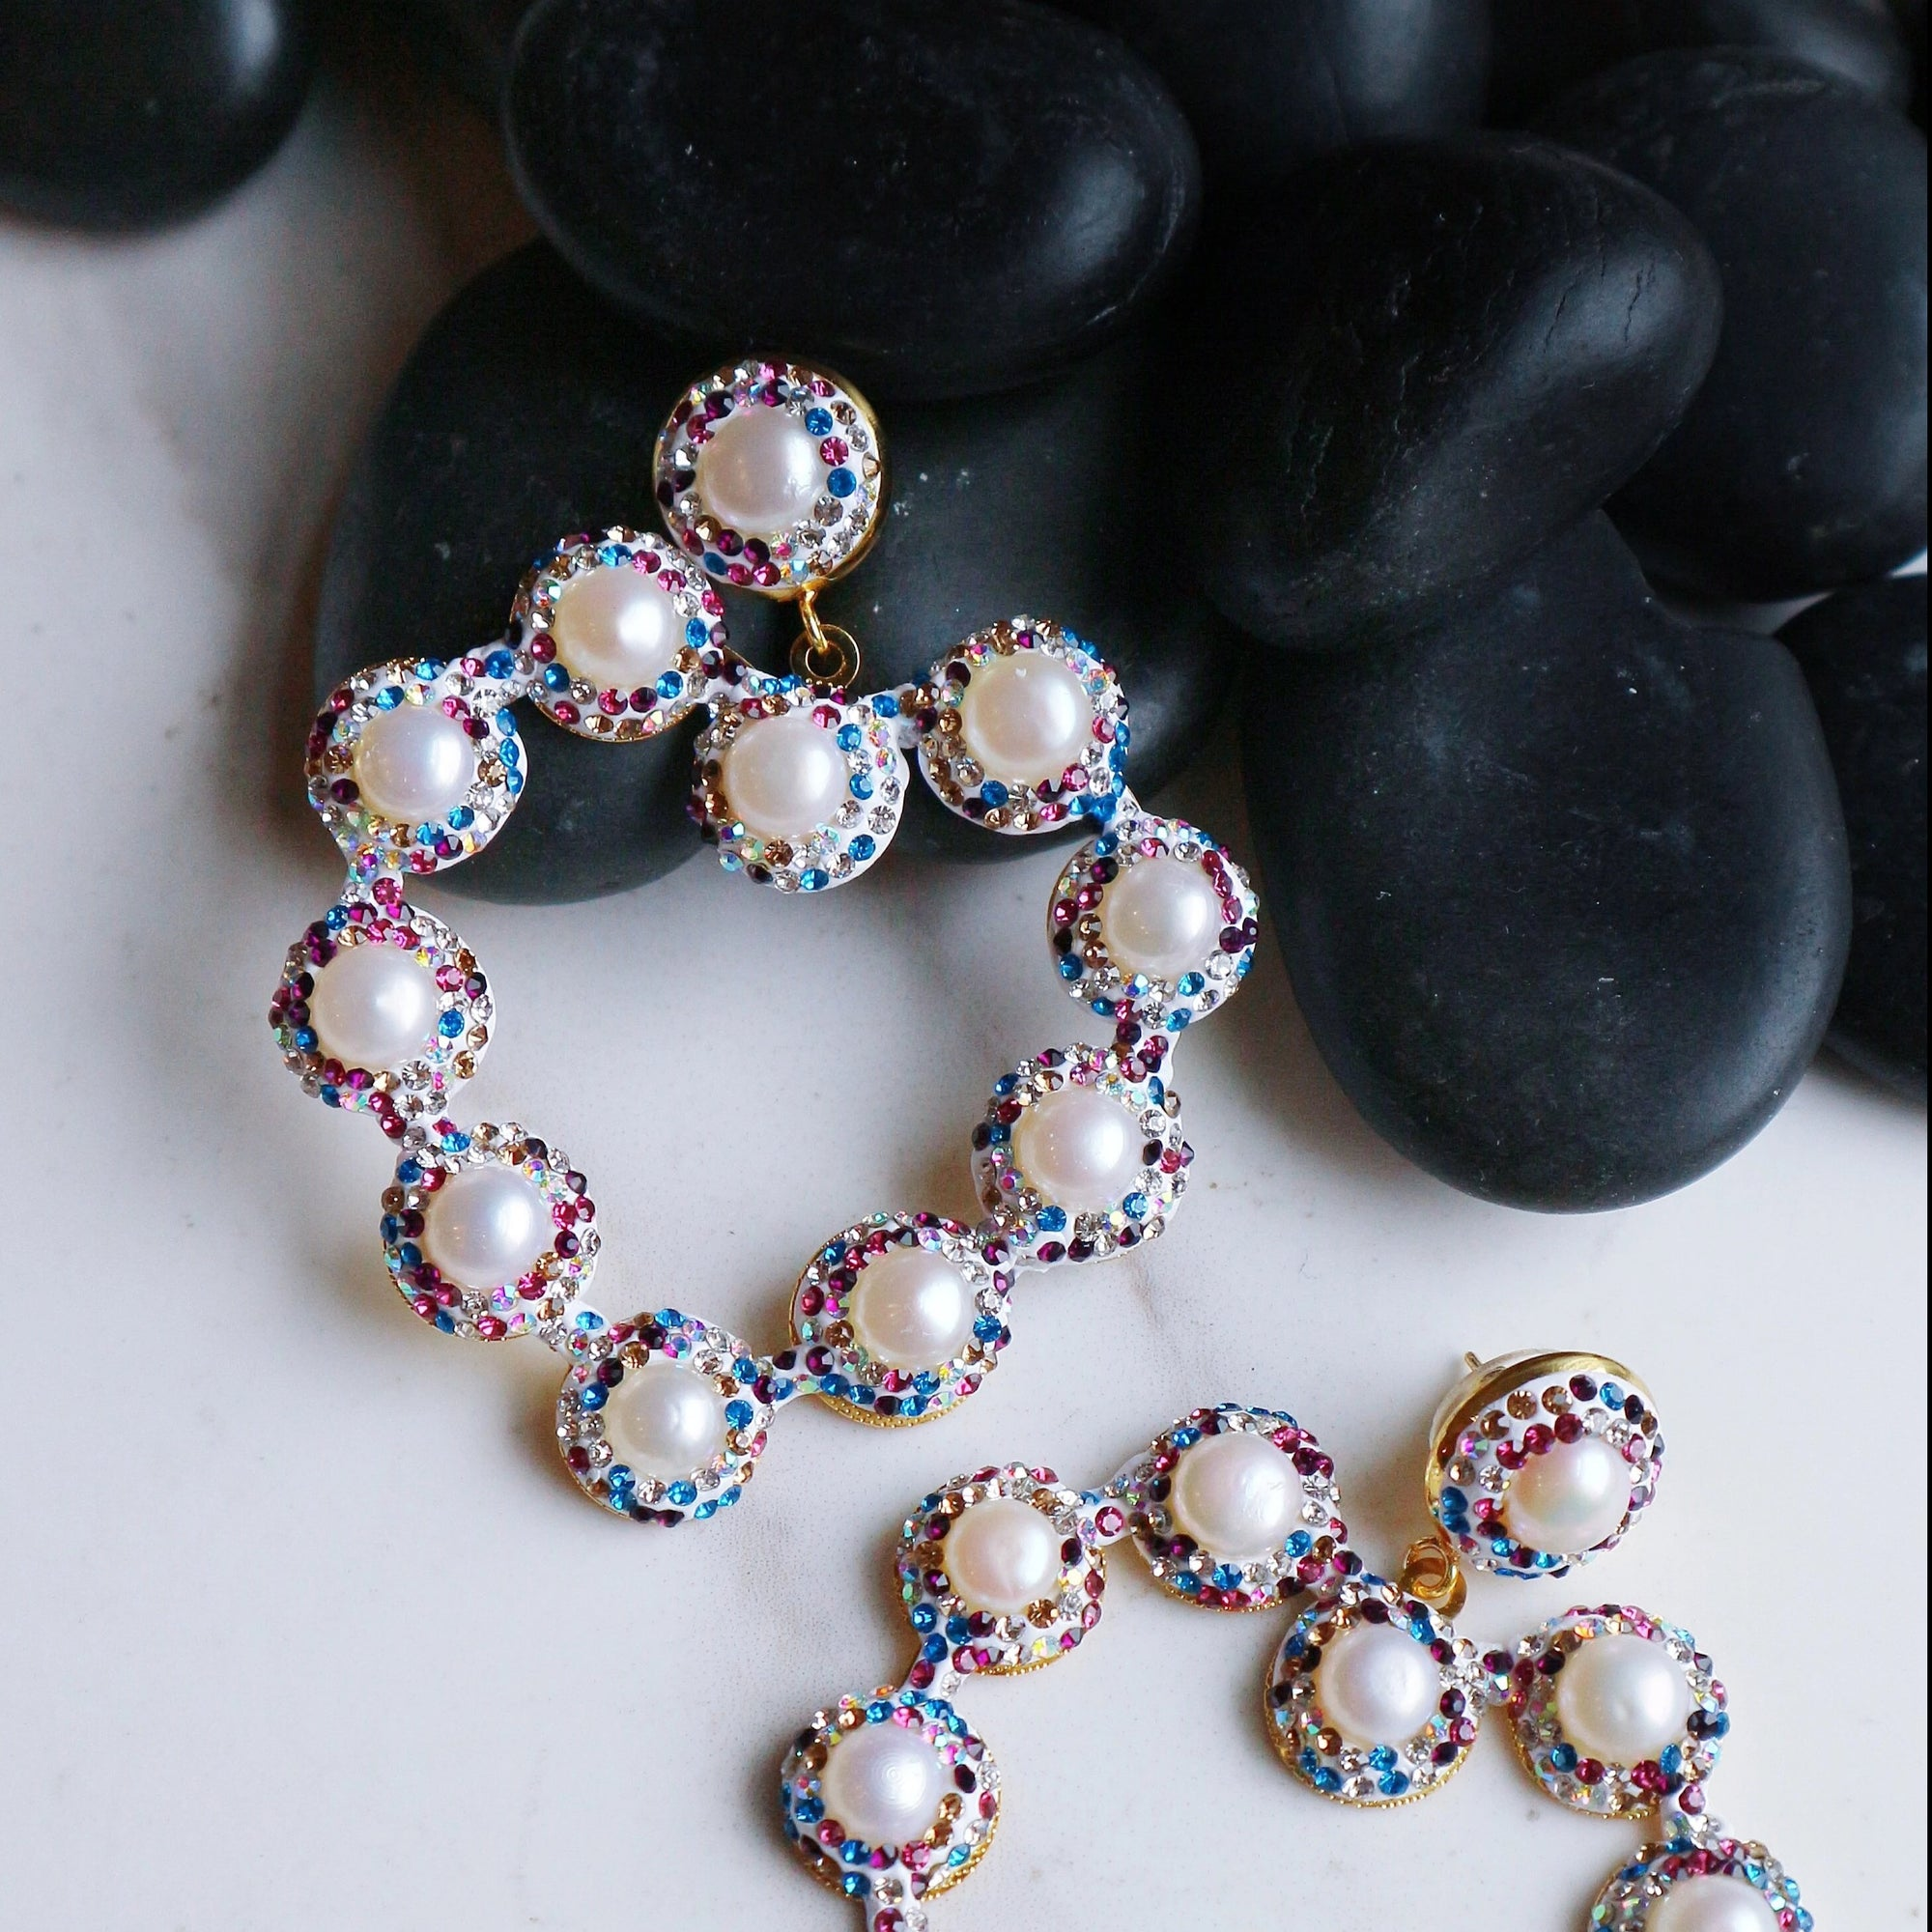 Rainbow Heart - Statement jewellery by Radiant Riviera